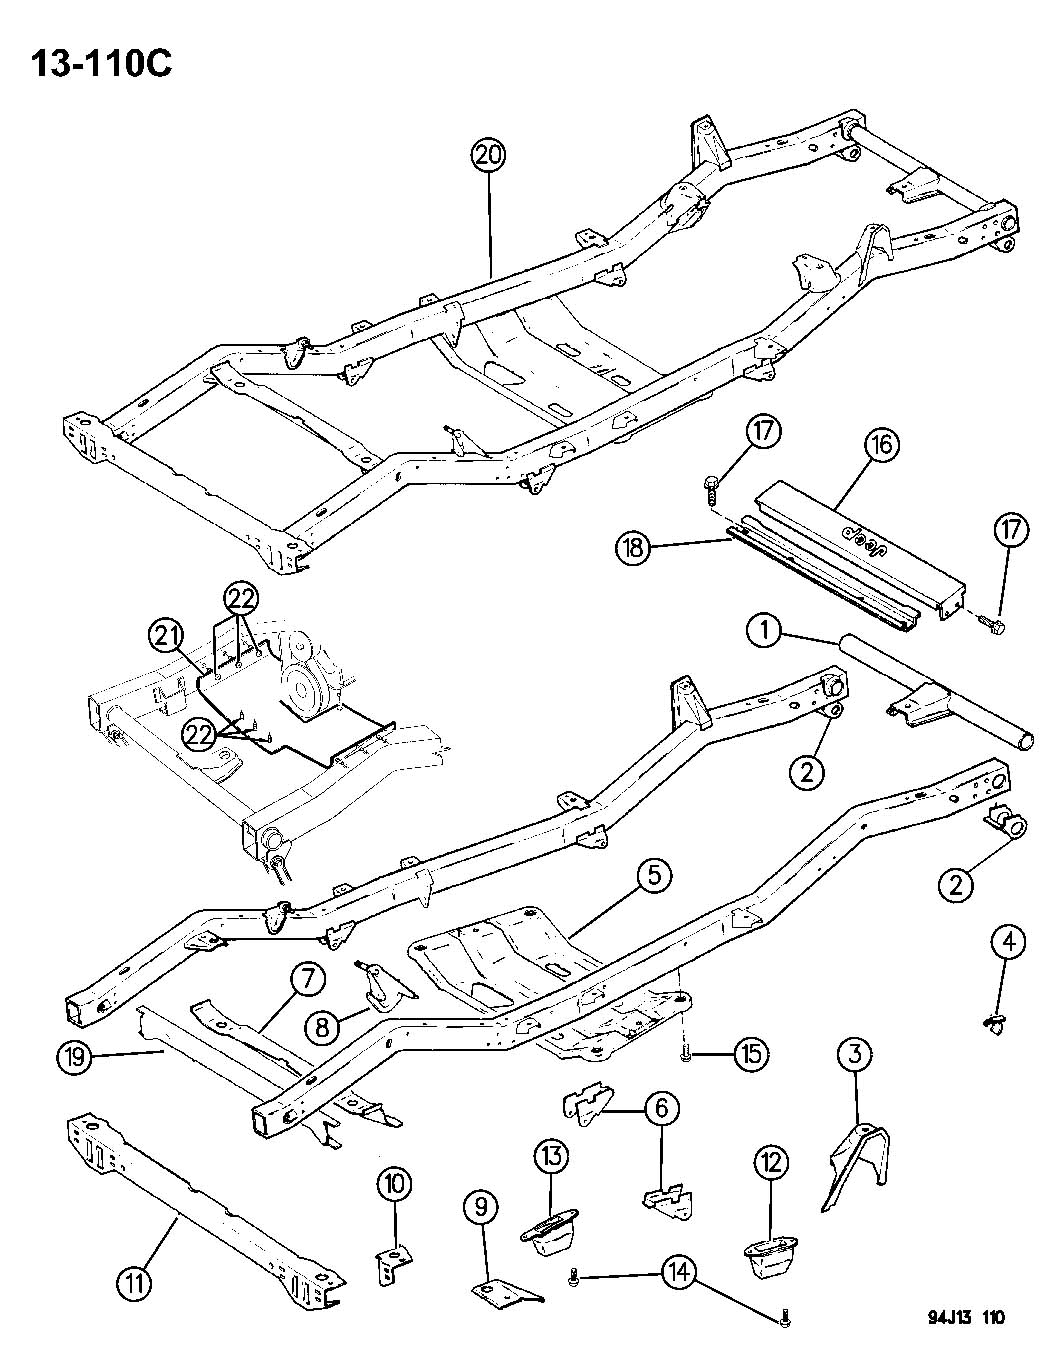 76 Dodge Wiring Diagram 1972 Chevy Nova Wiring Diagram